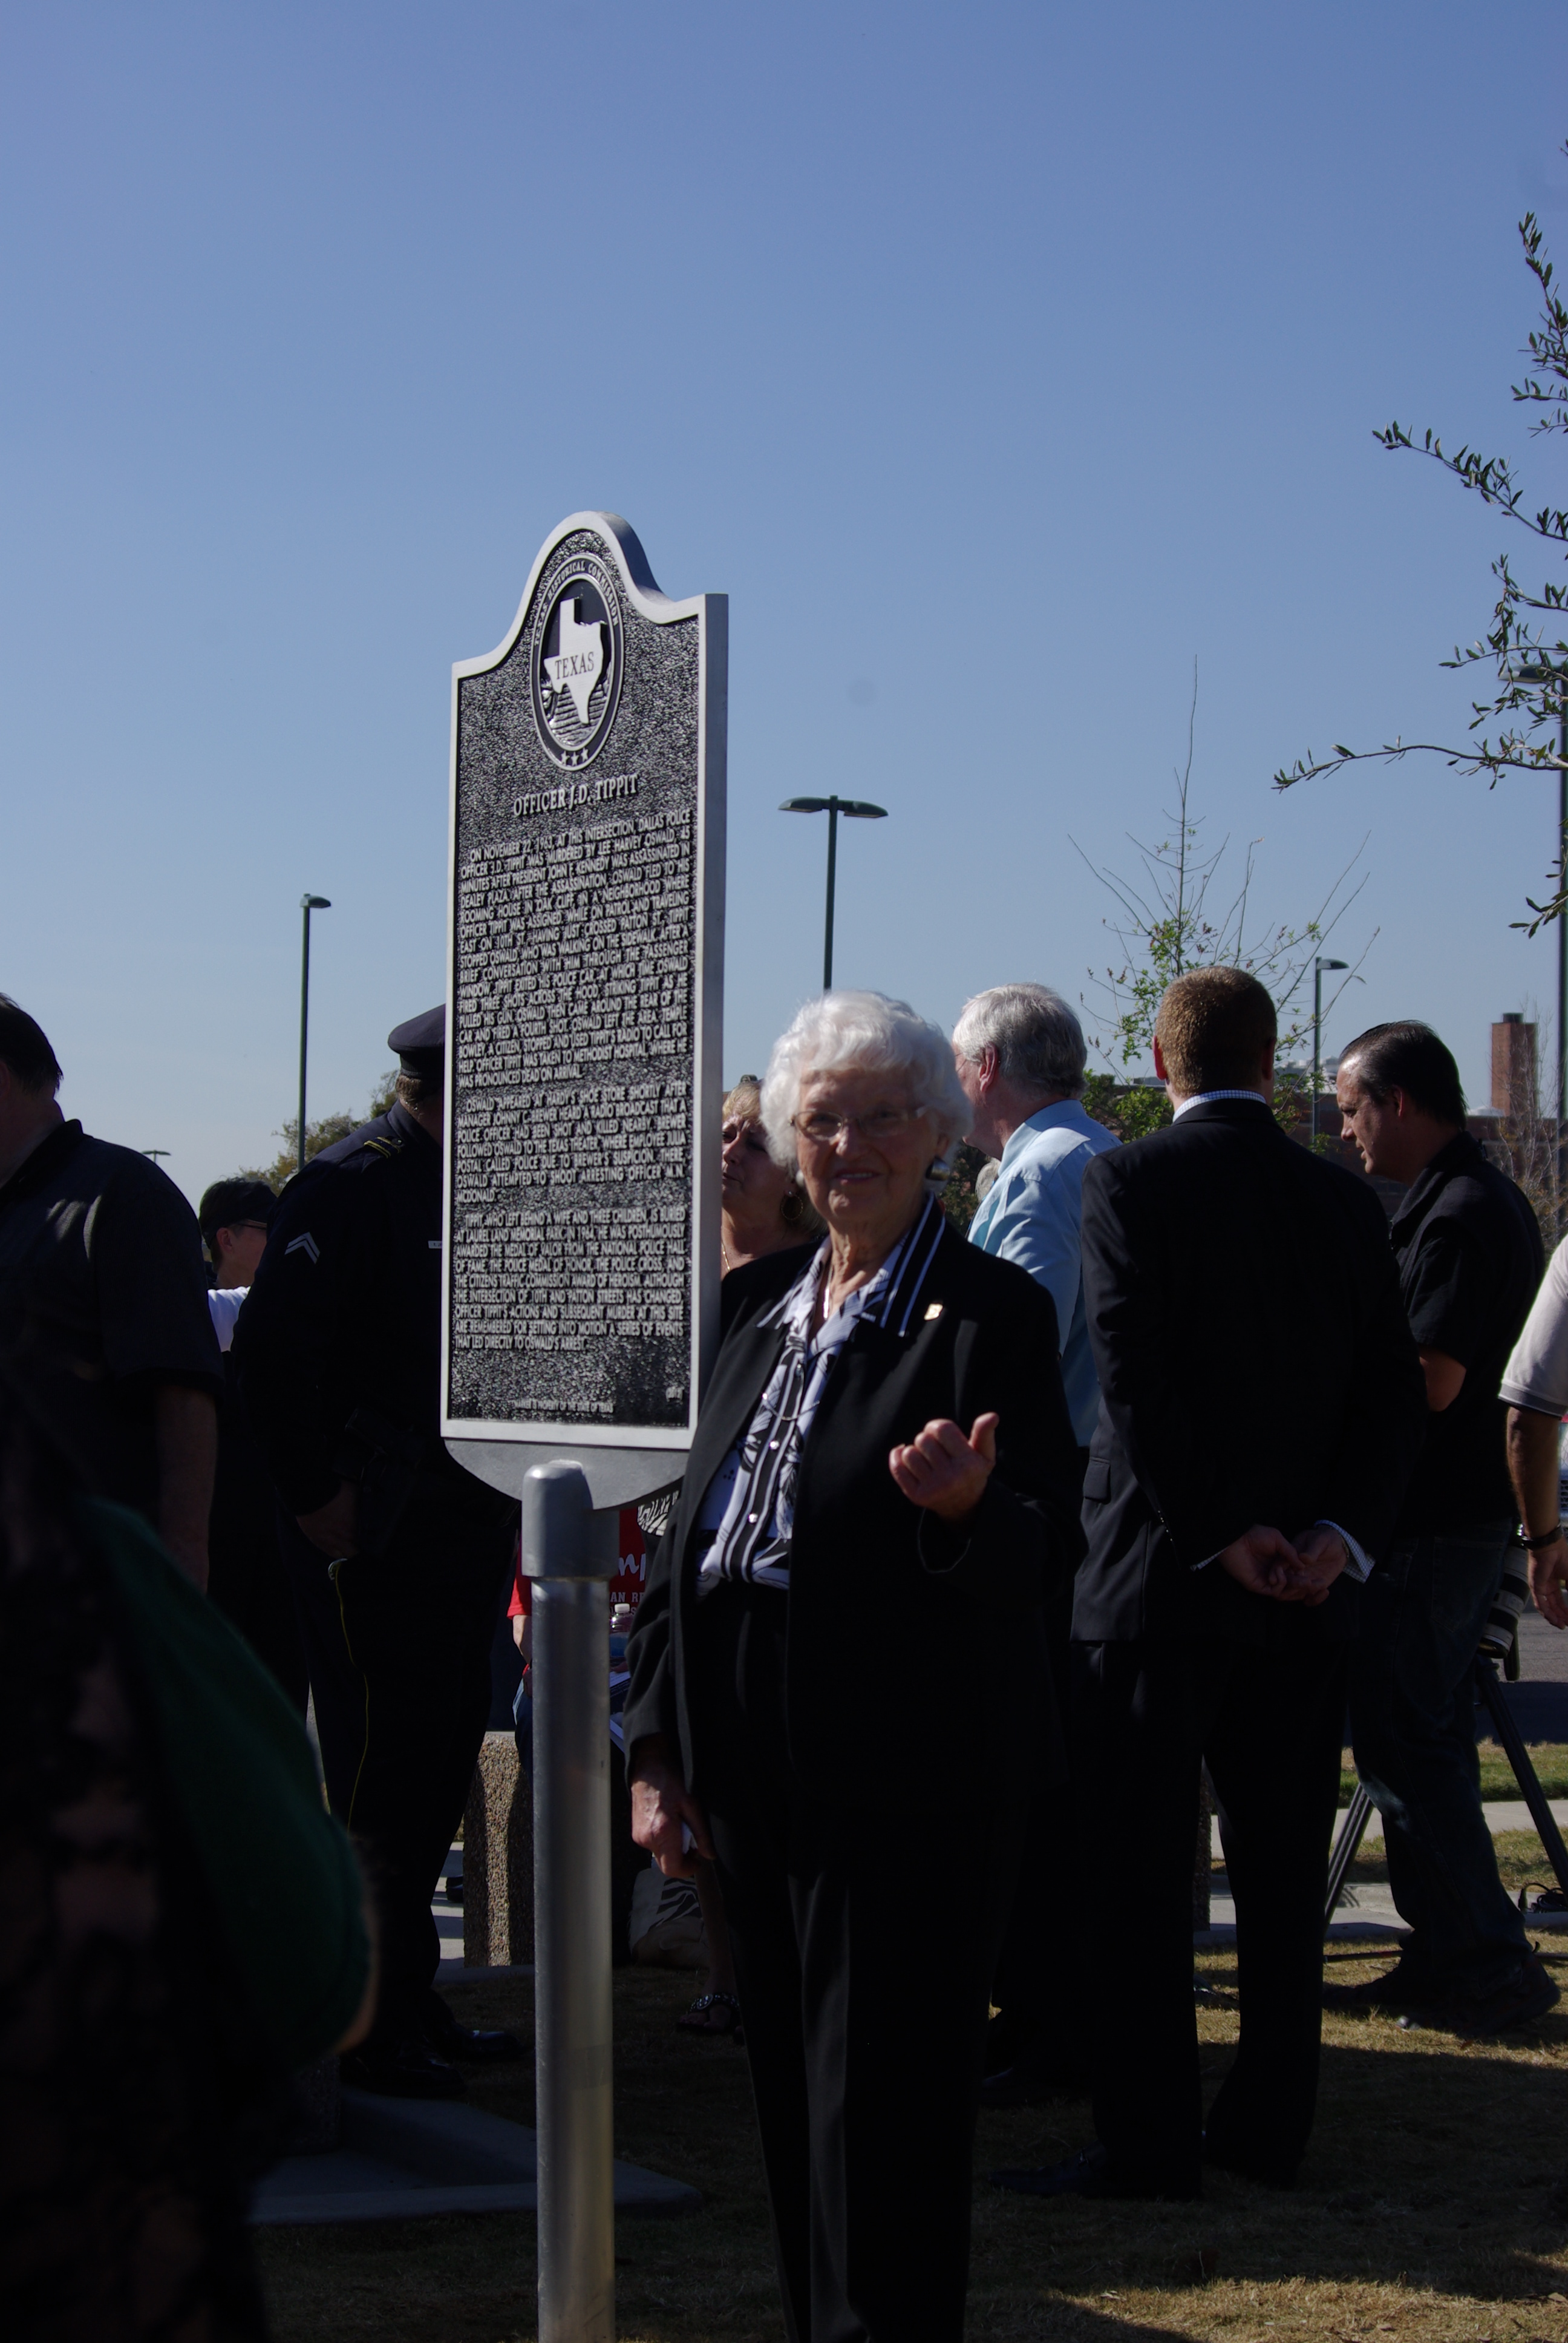 2012-11-20 Tippitt Memorial 019 Marie Tippit next to the memorial plaque to her husband, Officer J. D. Tippit